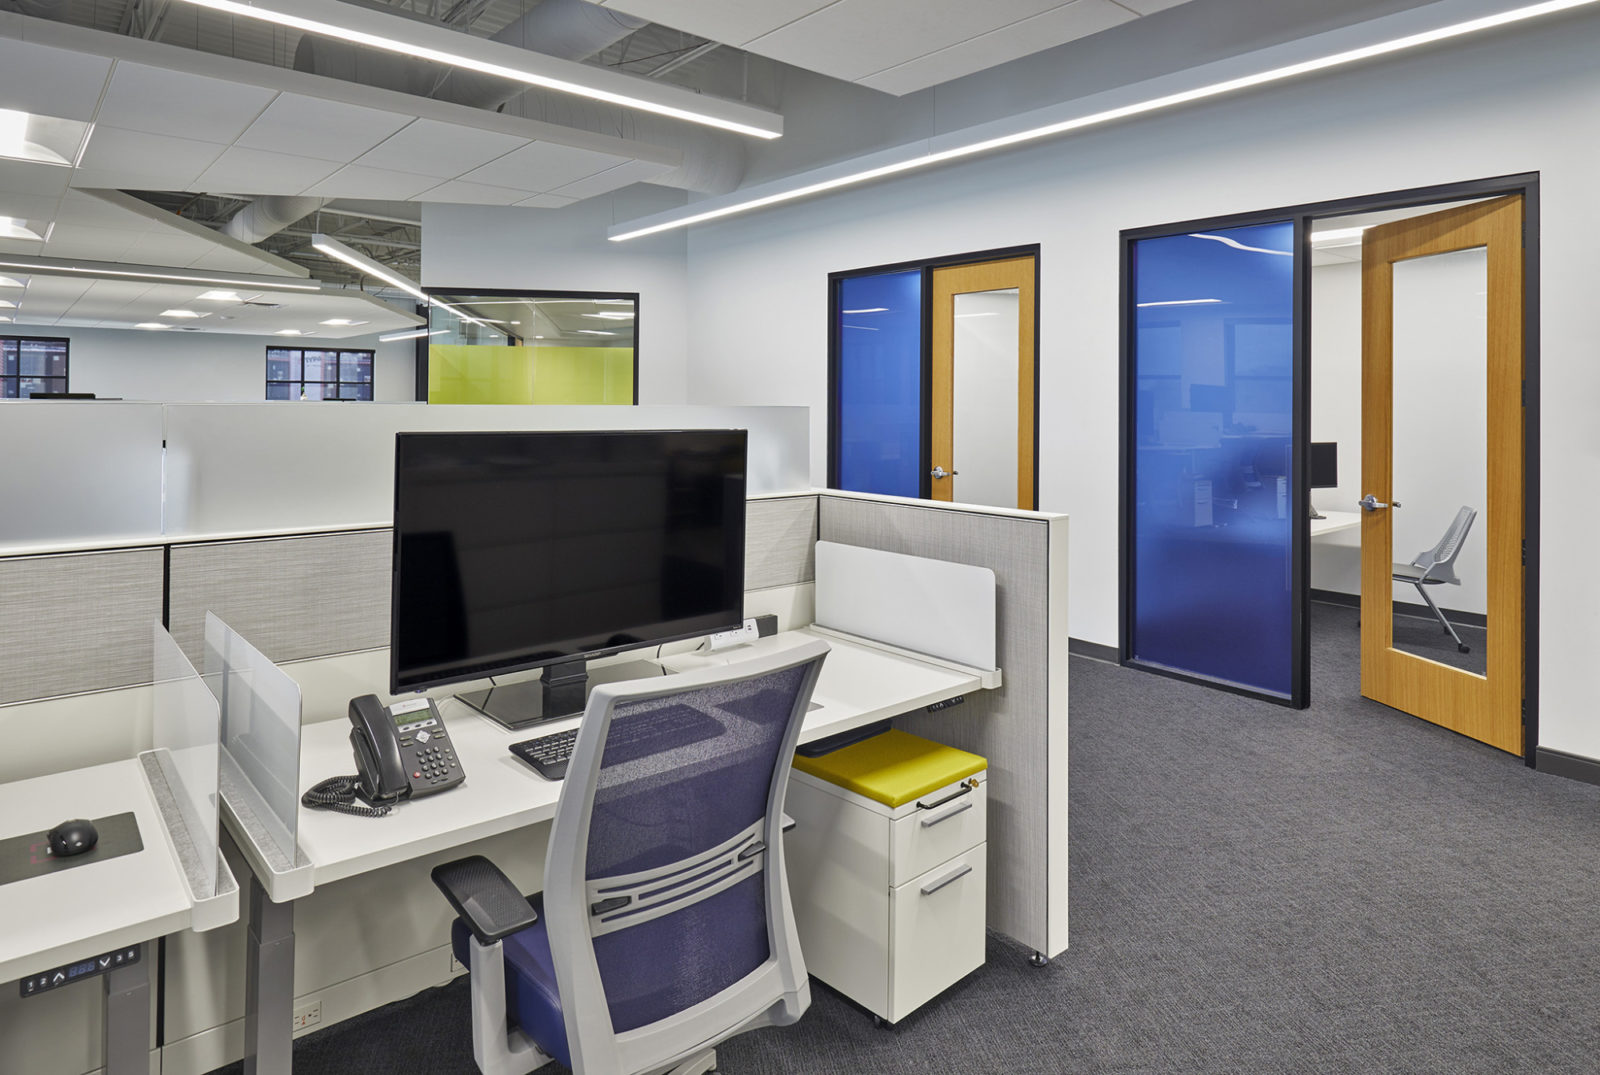 MJ Insurance Project Highlight: desk and office areas